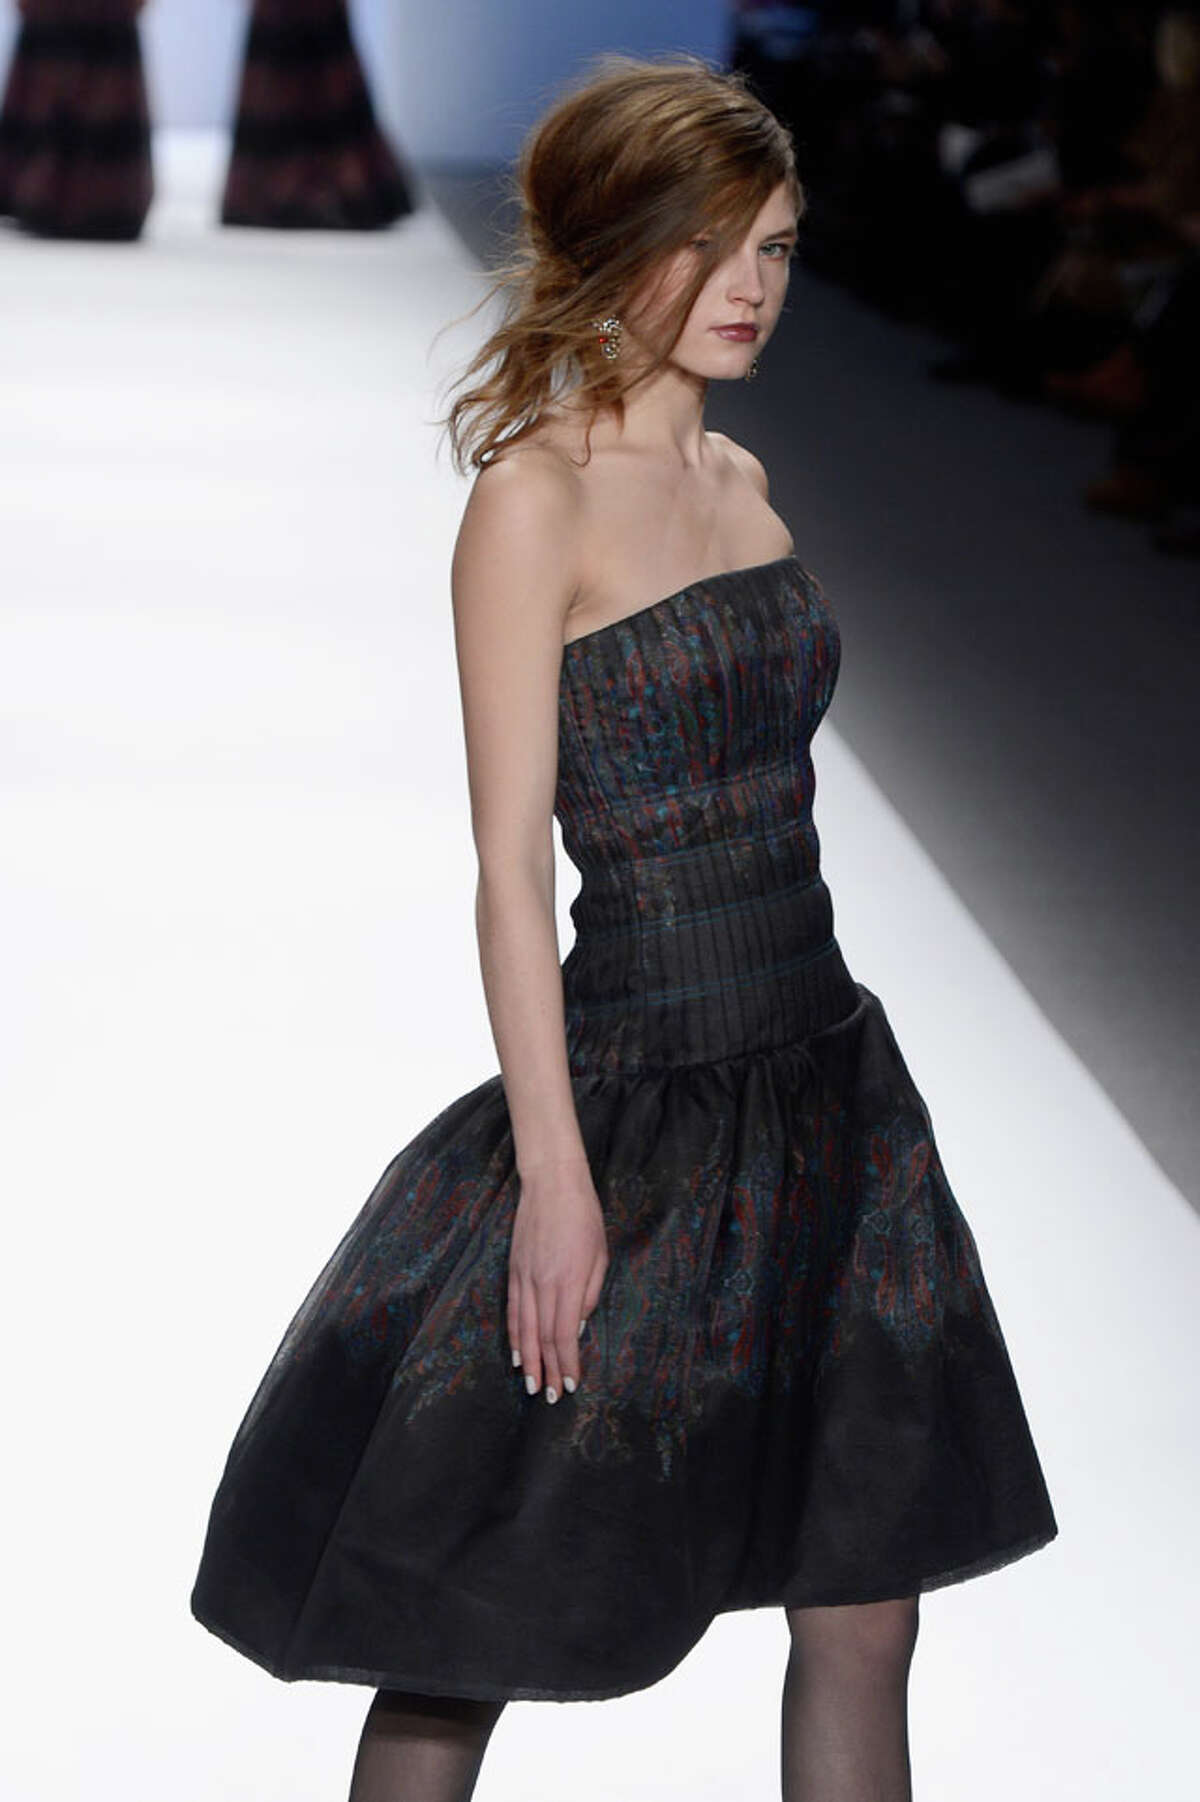 A model walks the runway at the Tadashi Shoji Fall 2013 fashion show during Mercedes-Benz Fashion Week at The Stage at Lincoln Center on February 7, 2013 in New York City. (Photo by Frazer Harrison/Getty Images for Mercedes-Benz Fashion Week)